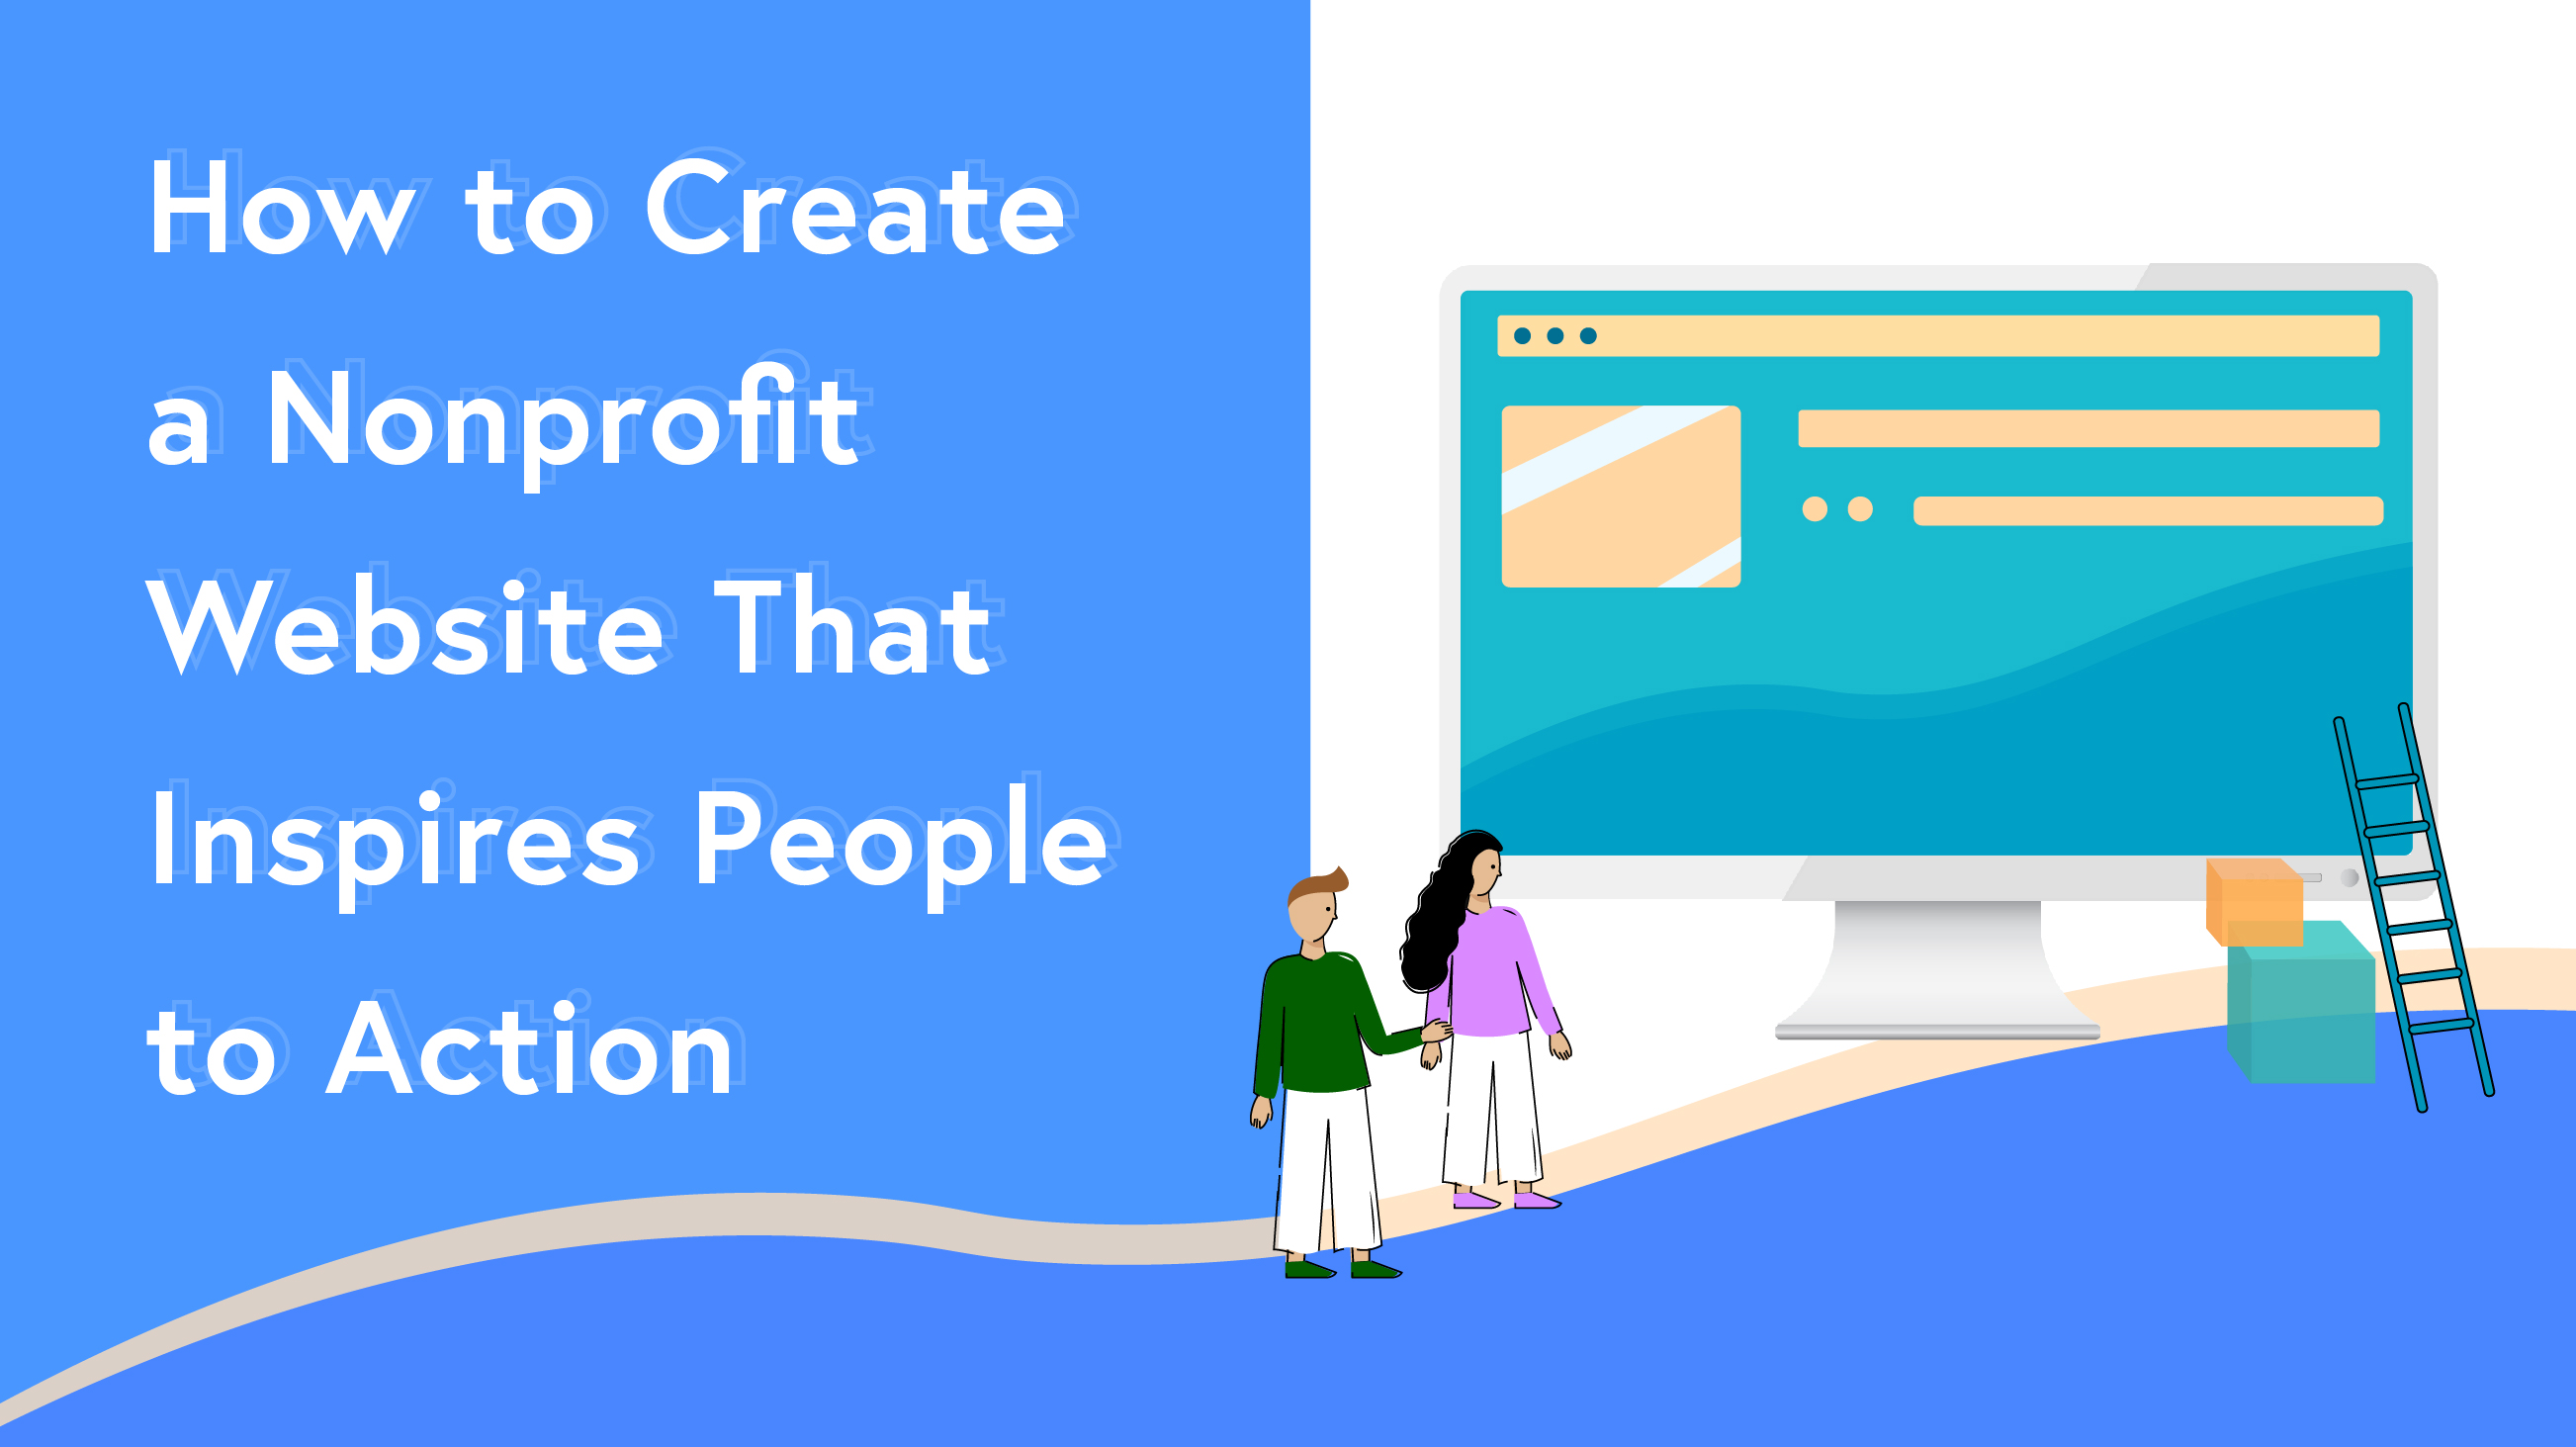 How to create a nonprofit website